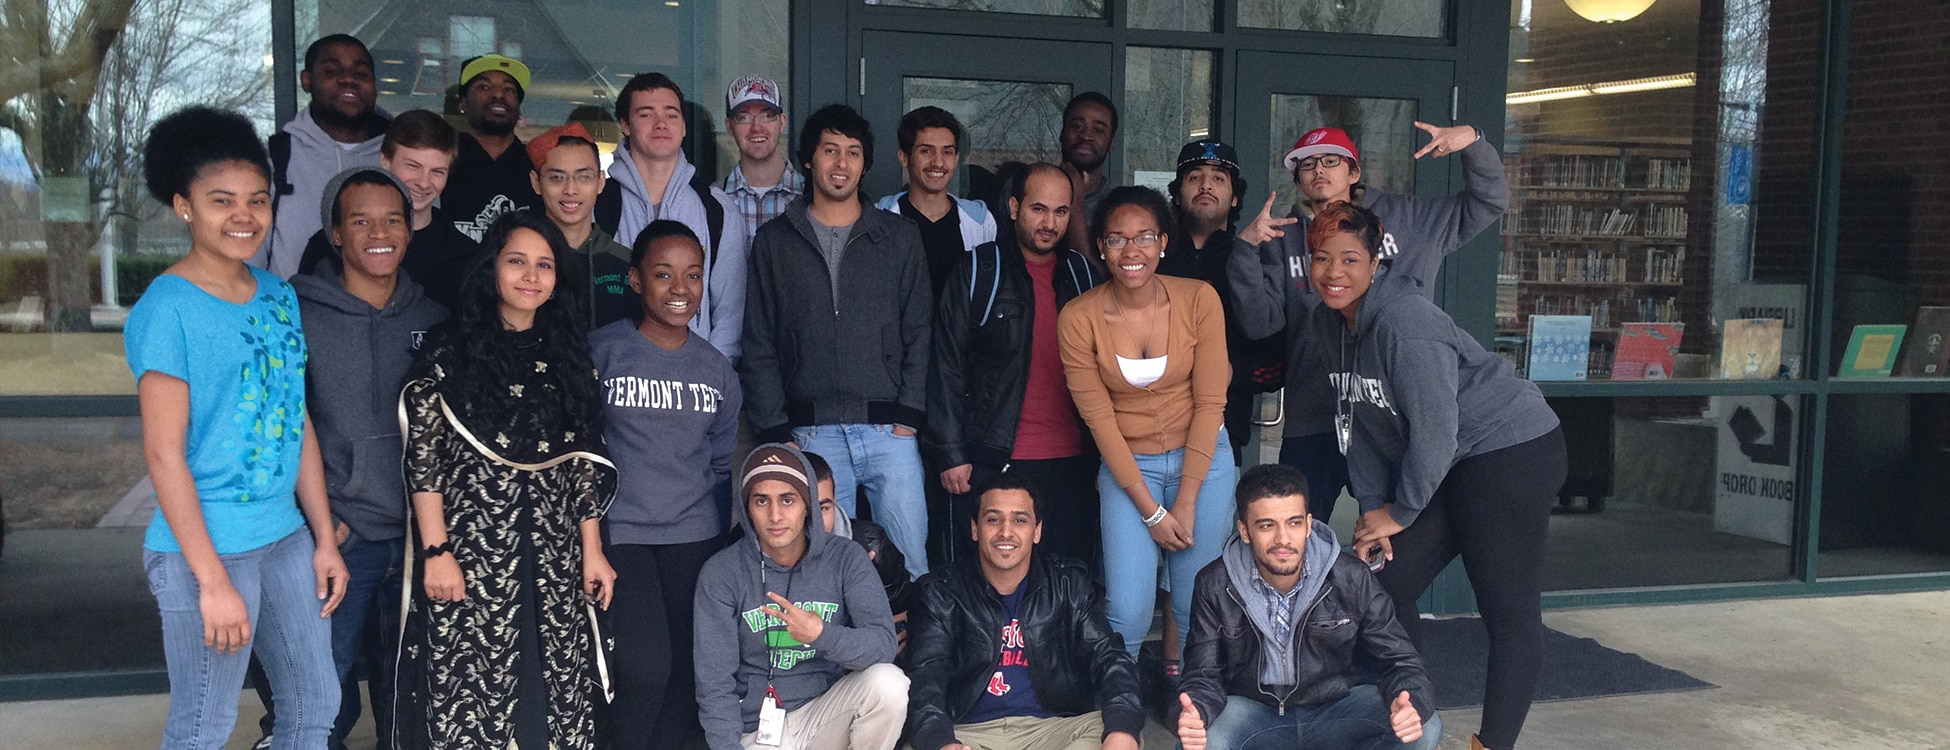 multicultural club, diversity, male students, female students, group photo, club